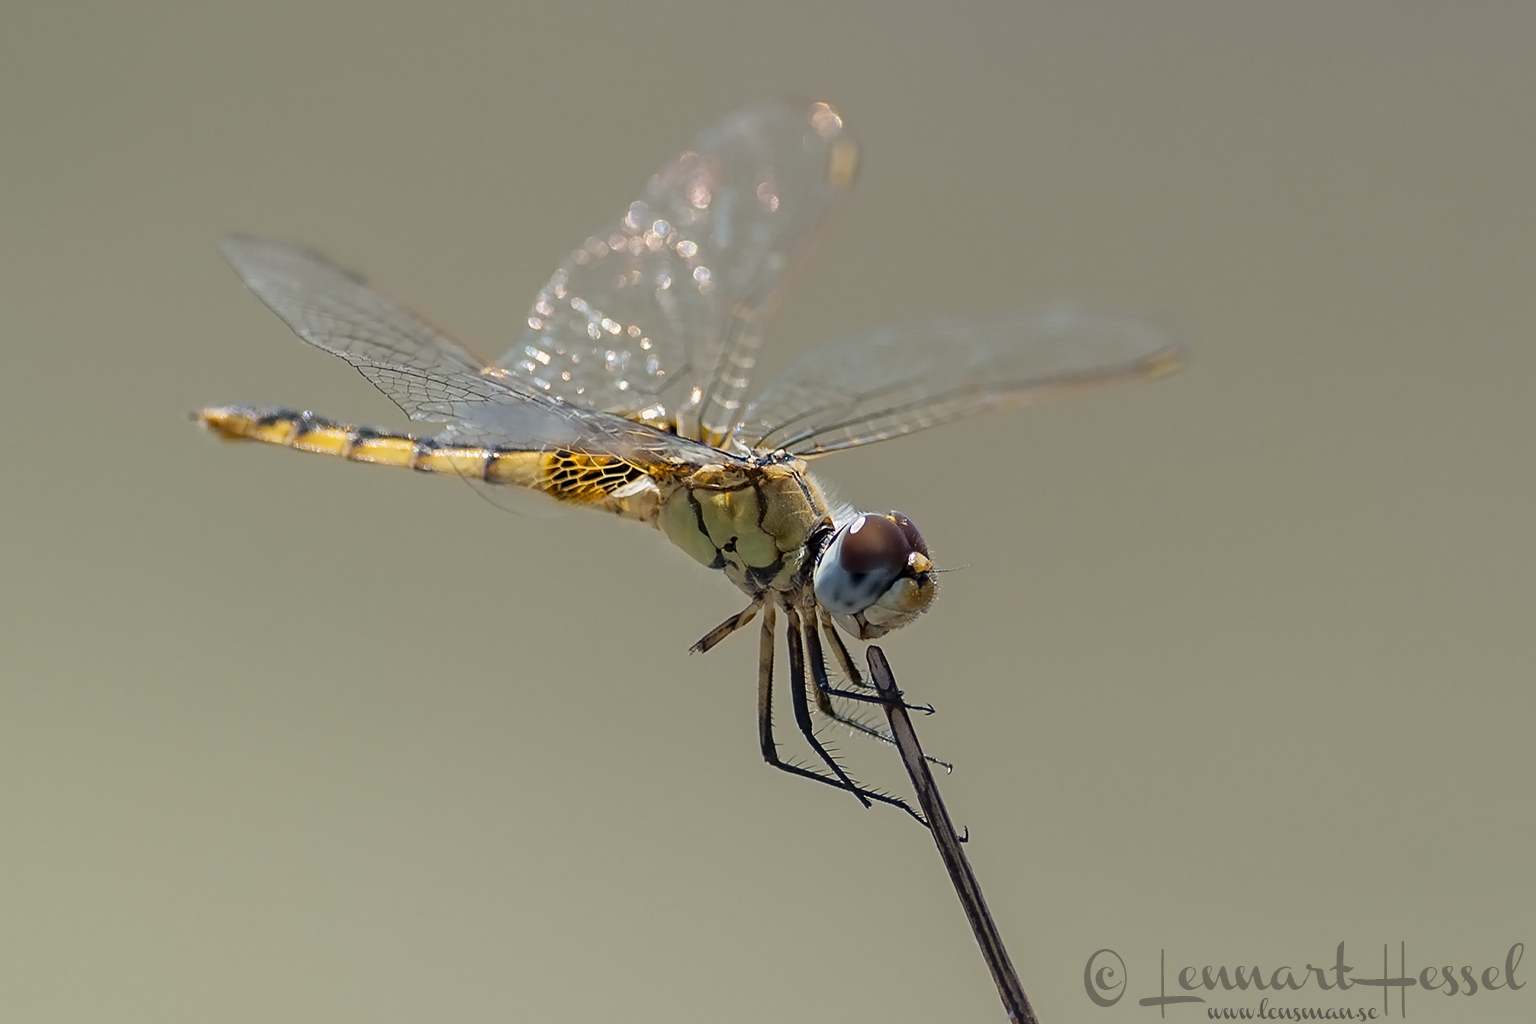 Yellow Dragonfly in the Okavango Delta, Botswana